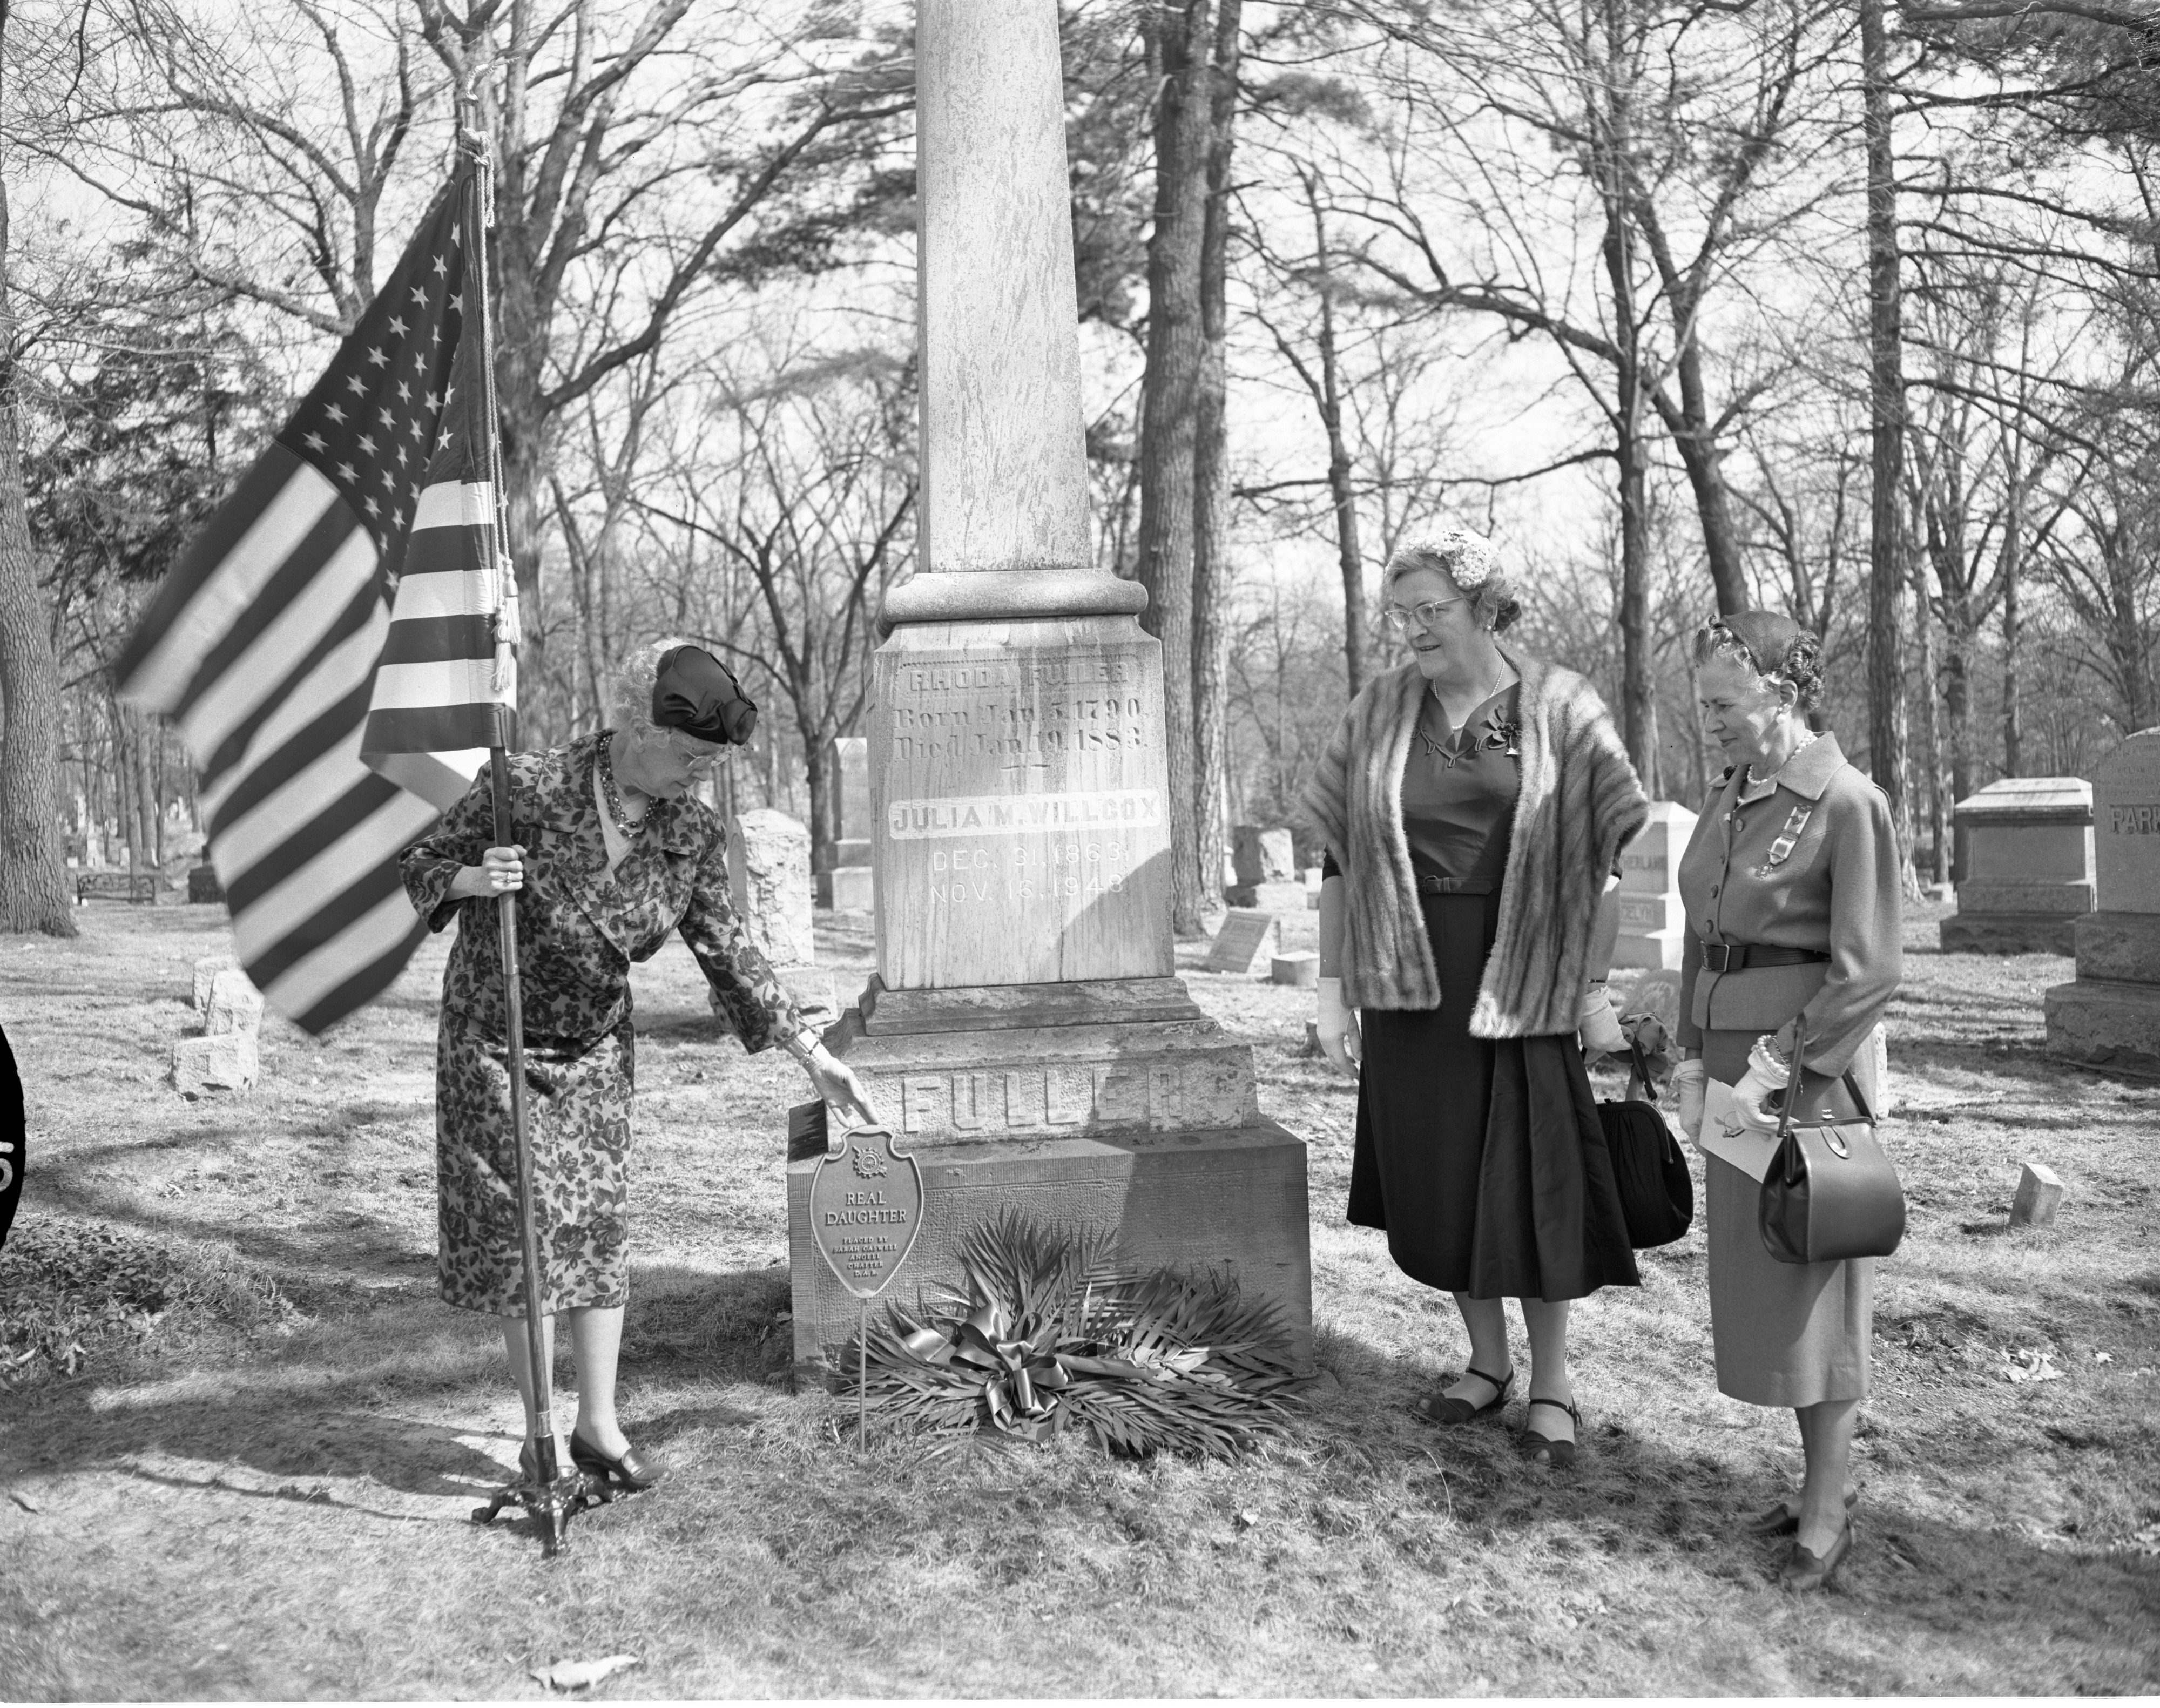 DAR Women Place Marker On Grave Of Mrs. Rhoda Fuller, April 1959 image